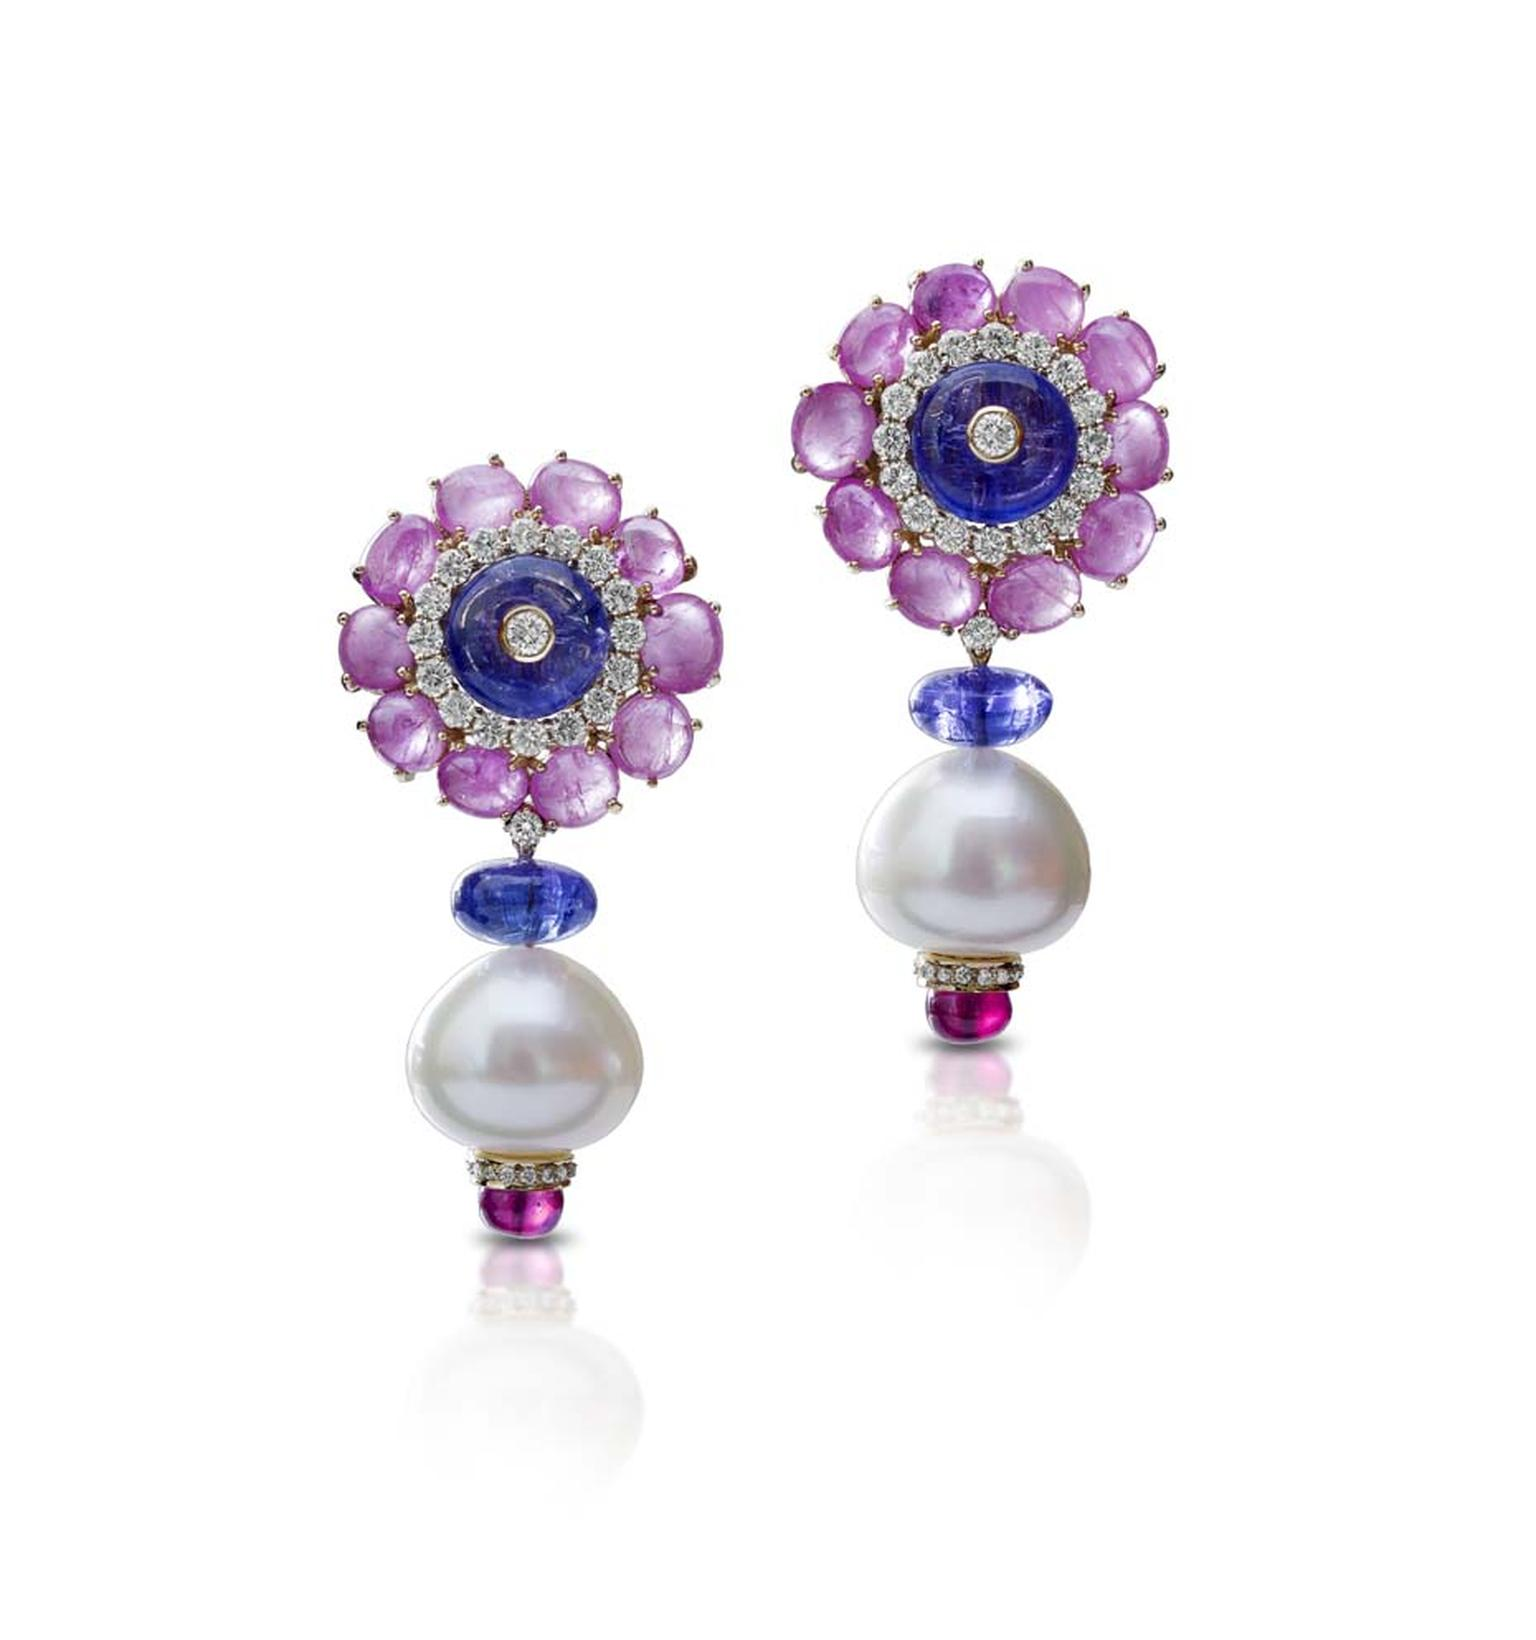 Farah Khan gold earrings featuring diamonds, tanzanites (16.66ct), sapphires (23.79ct), rubies (3.07ct) and South Sea pearls (55.93ct).